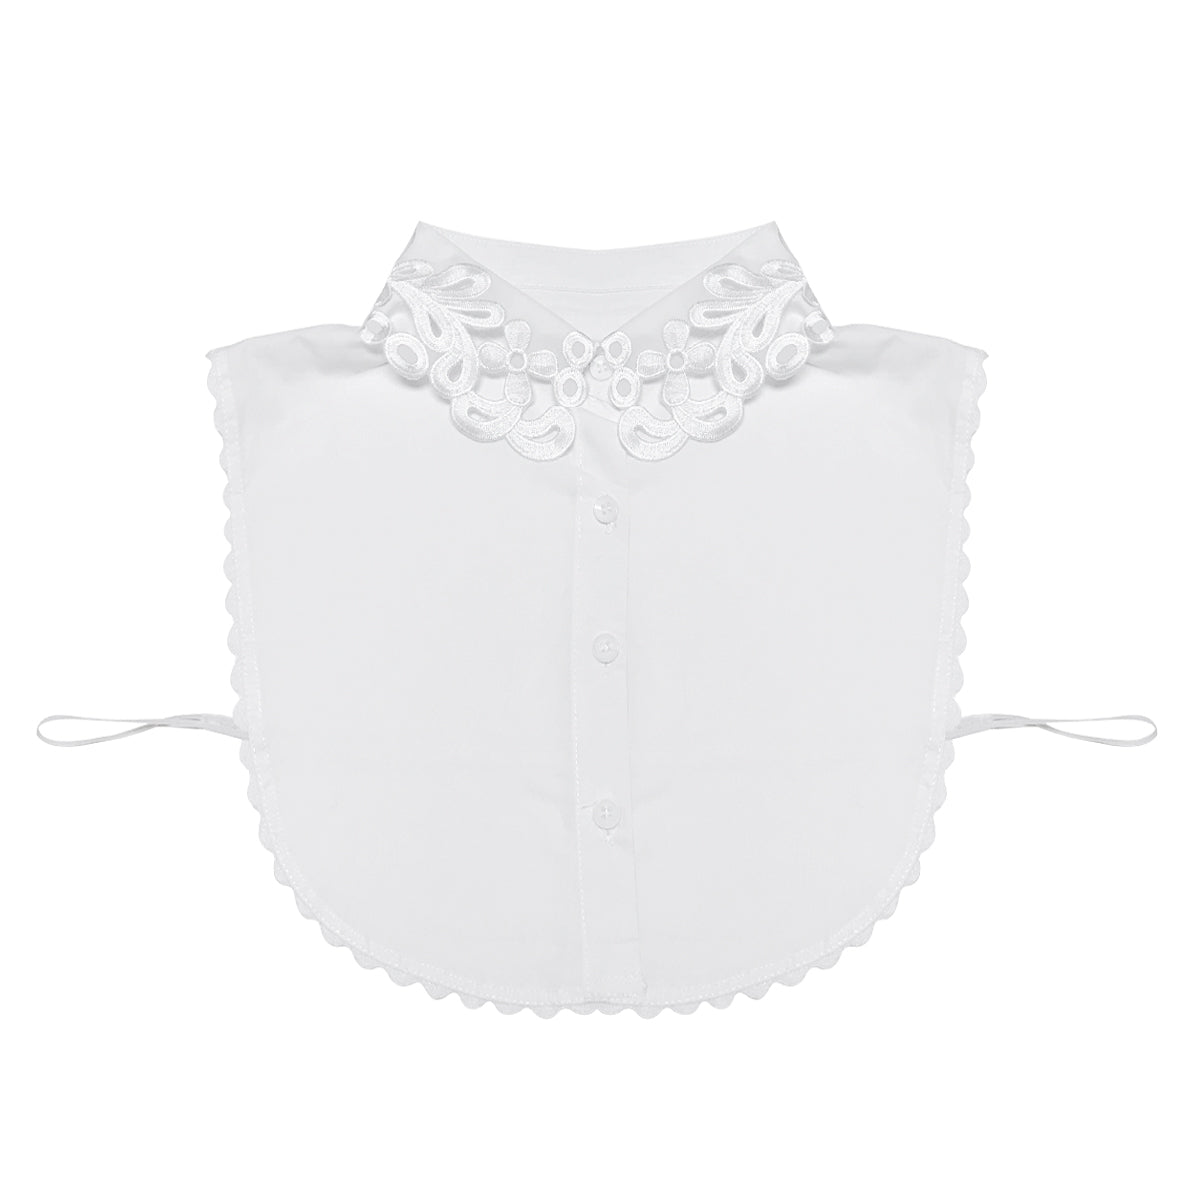 Wrapables Daisy Doily Lace Collar Half Shirt